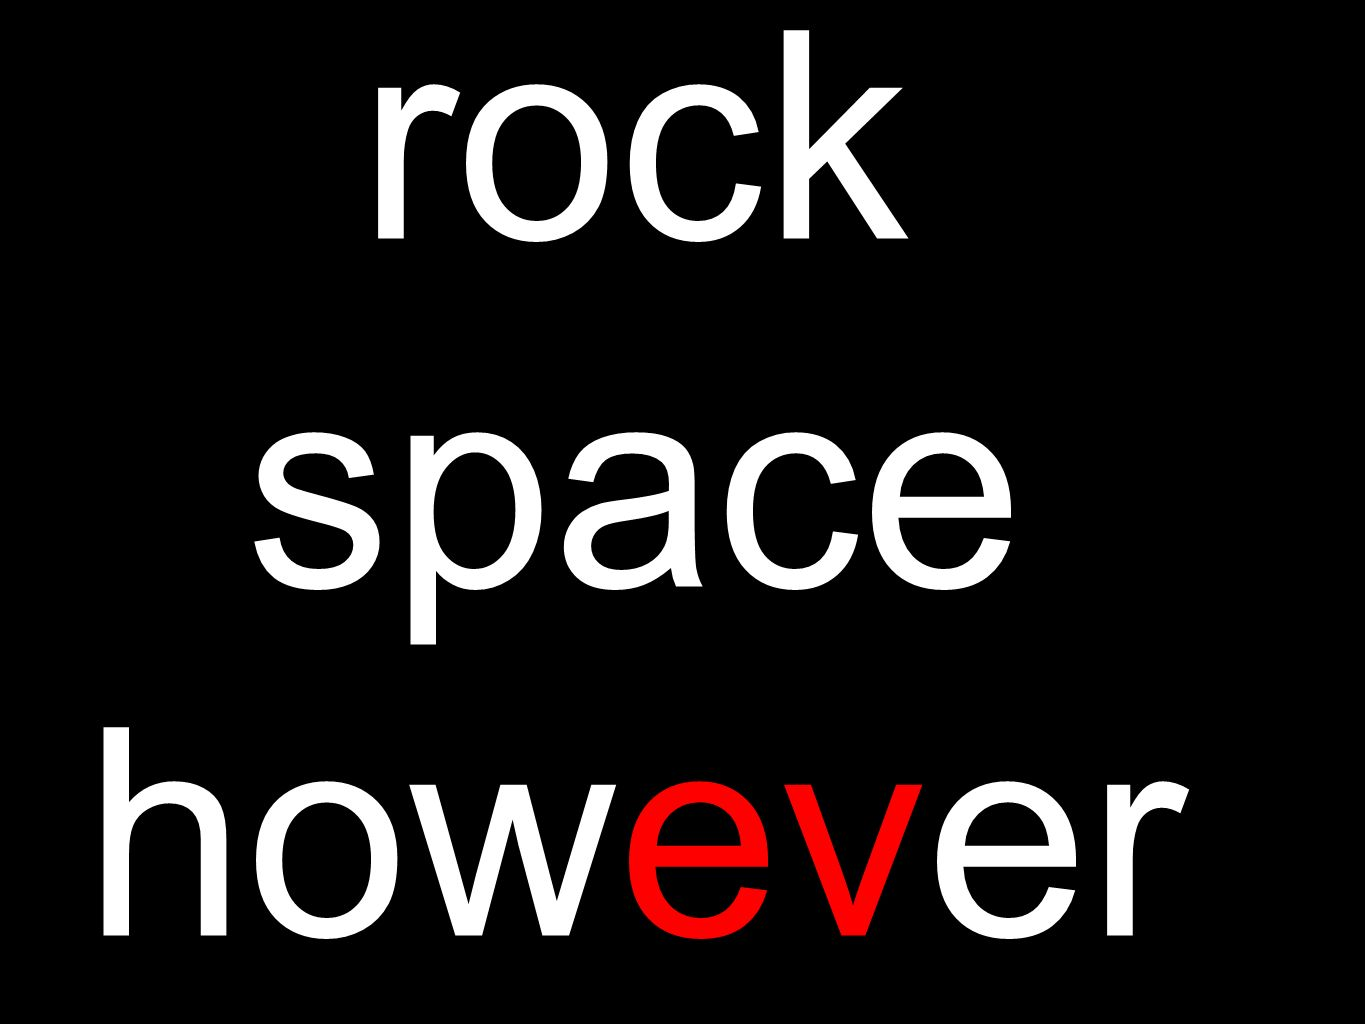 rock space however